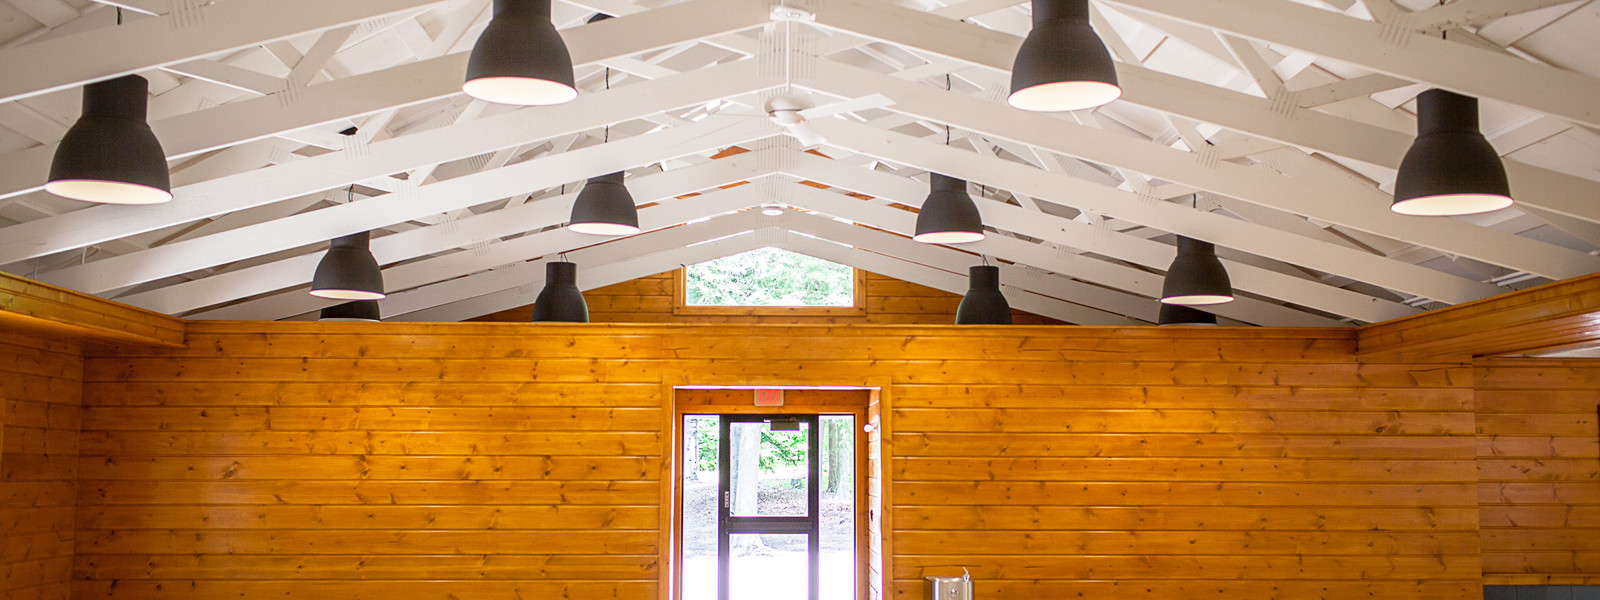 Camp Mess Hall and Kitchen Project-1.jpg